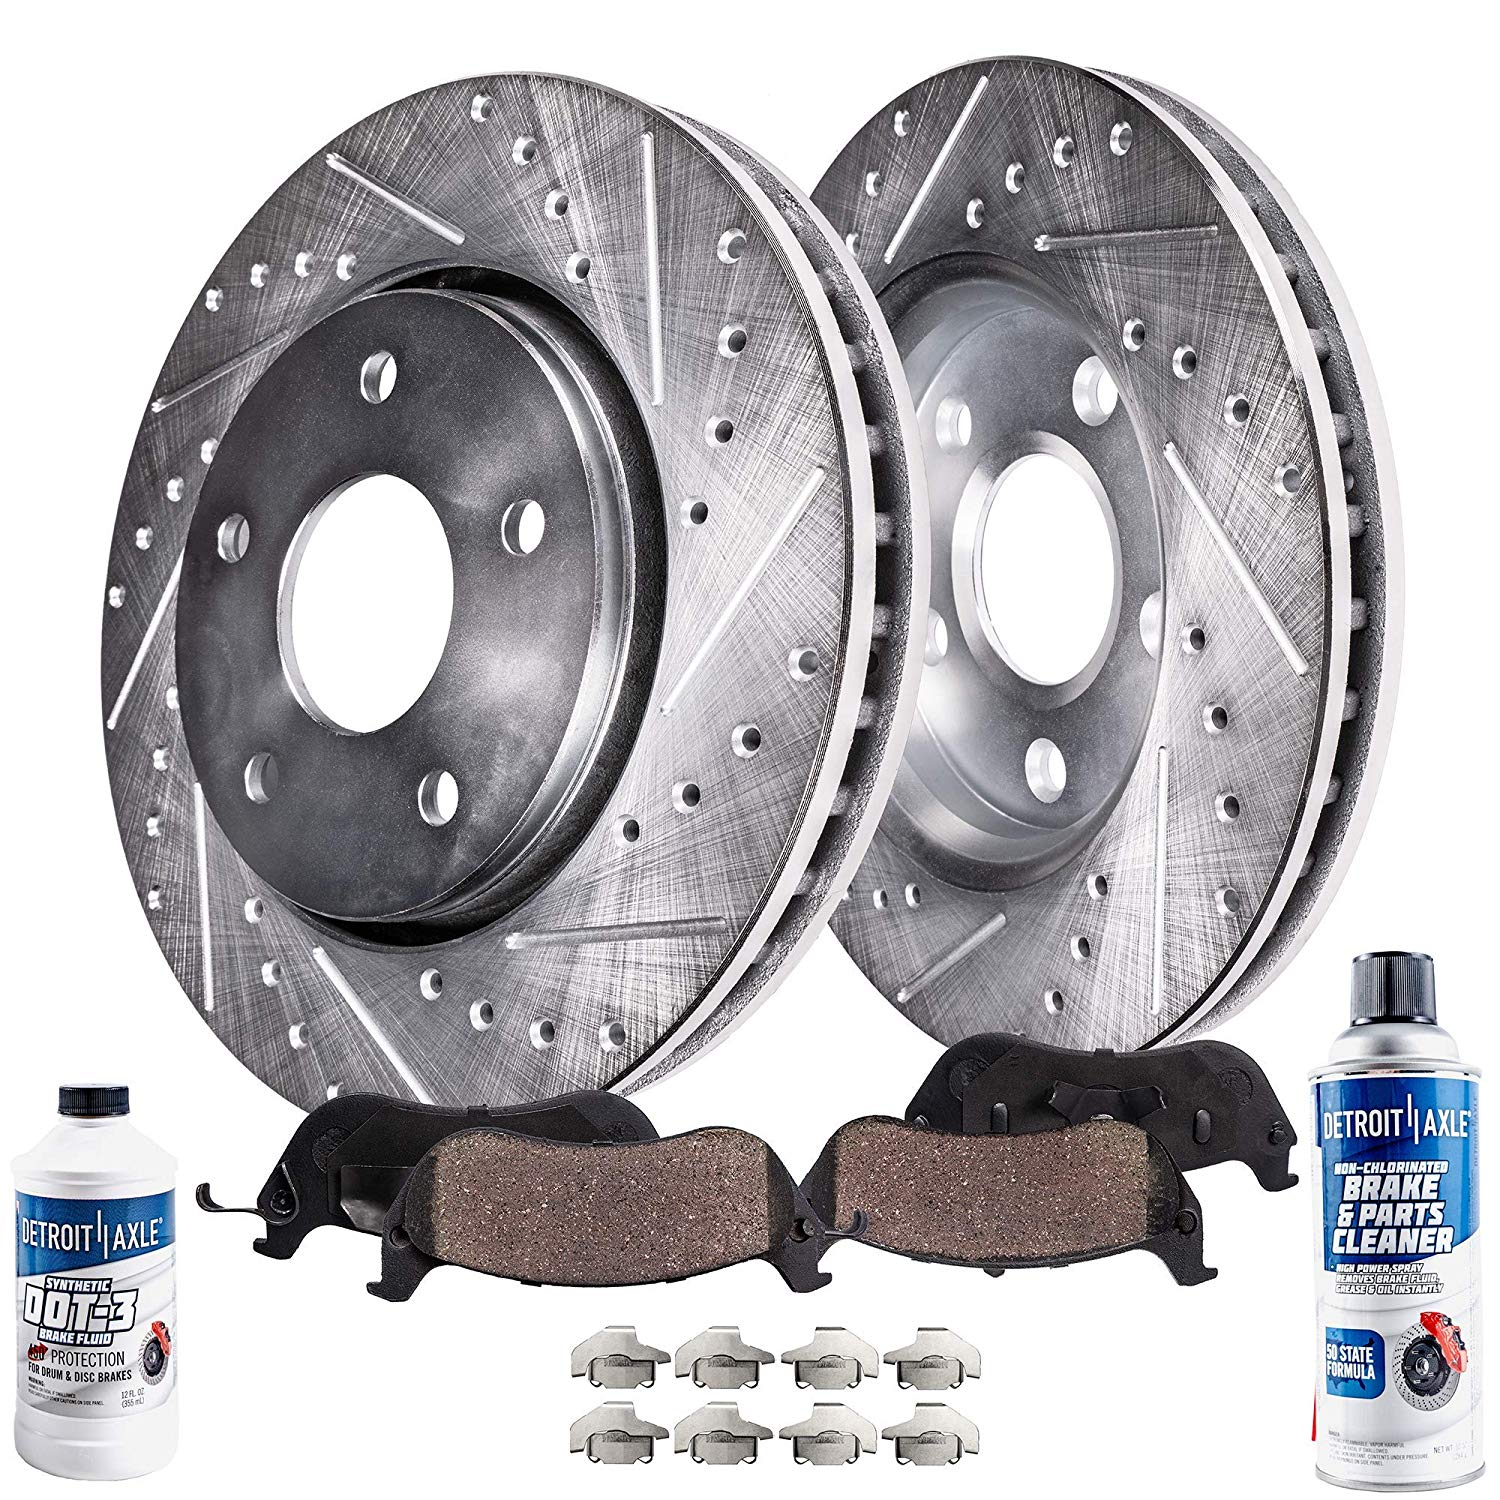 2011 Benz ML350 w//Rear Solid Rotors OE Replacement Rotors w//Ceramic Pads F+R